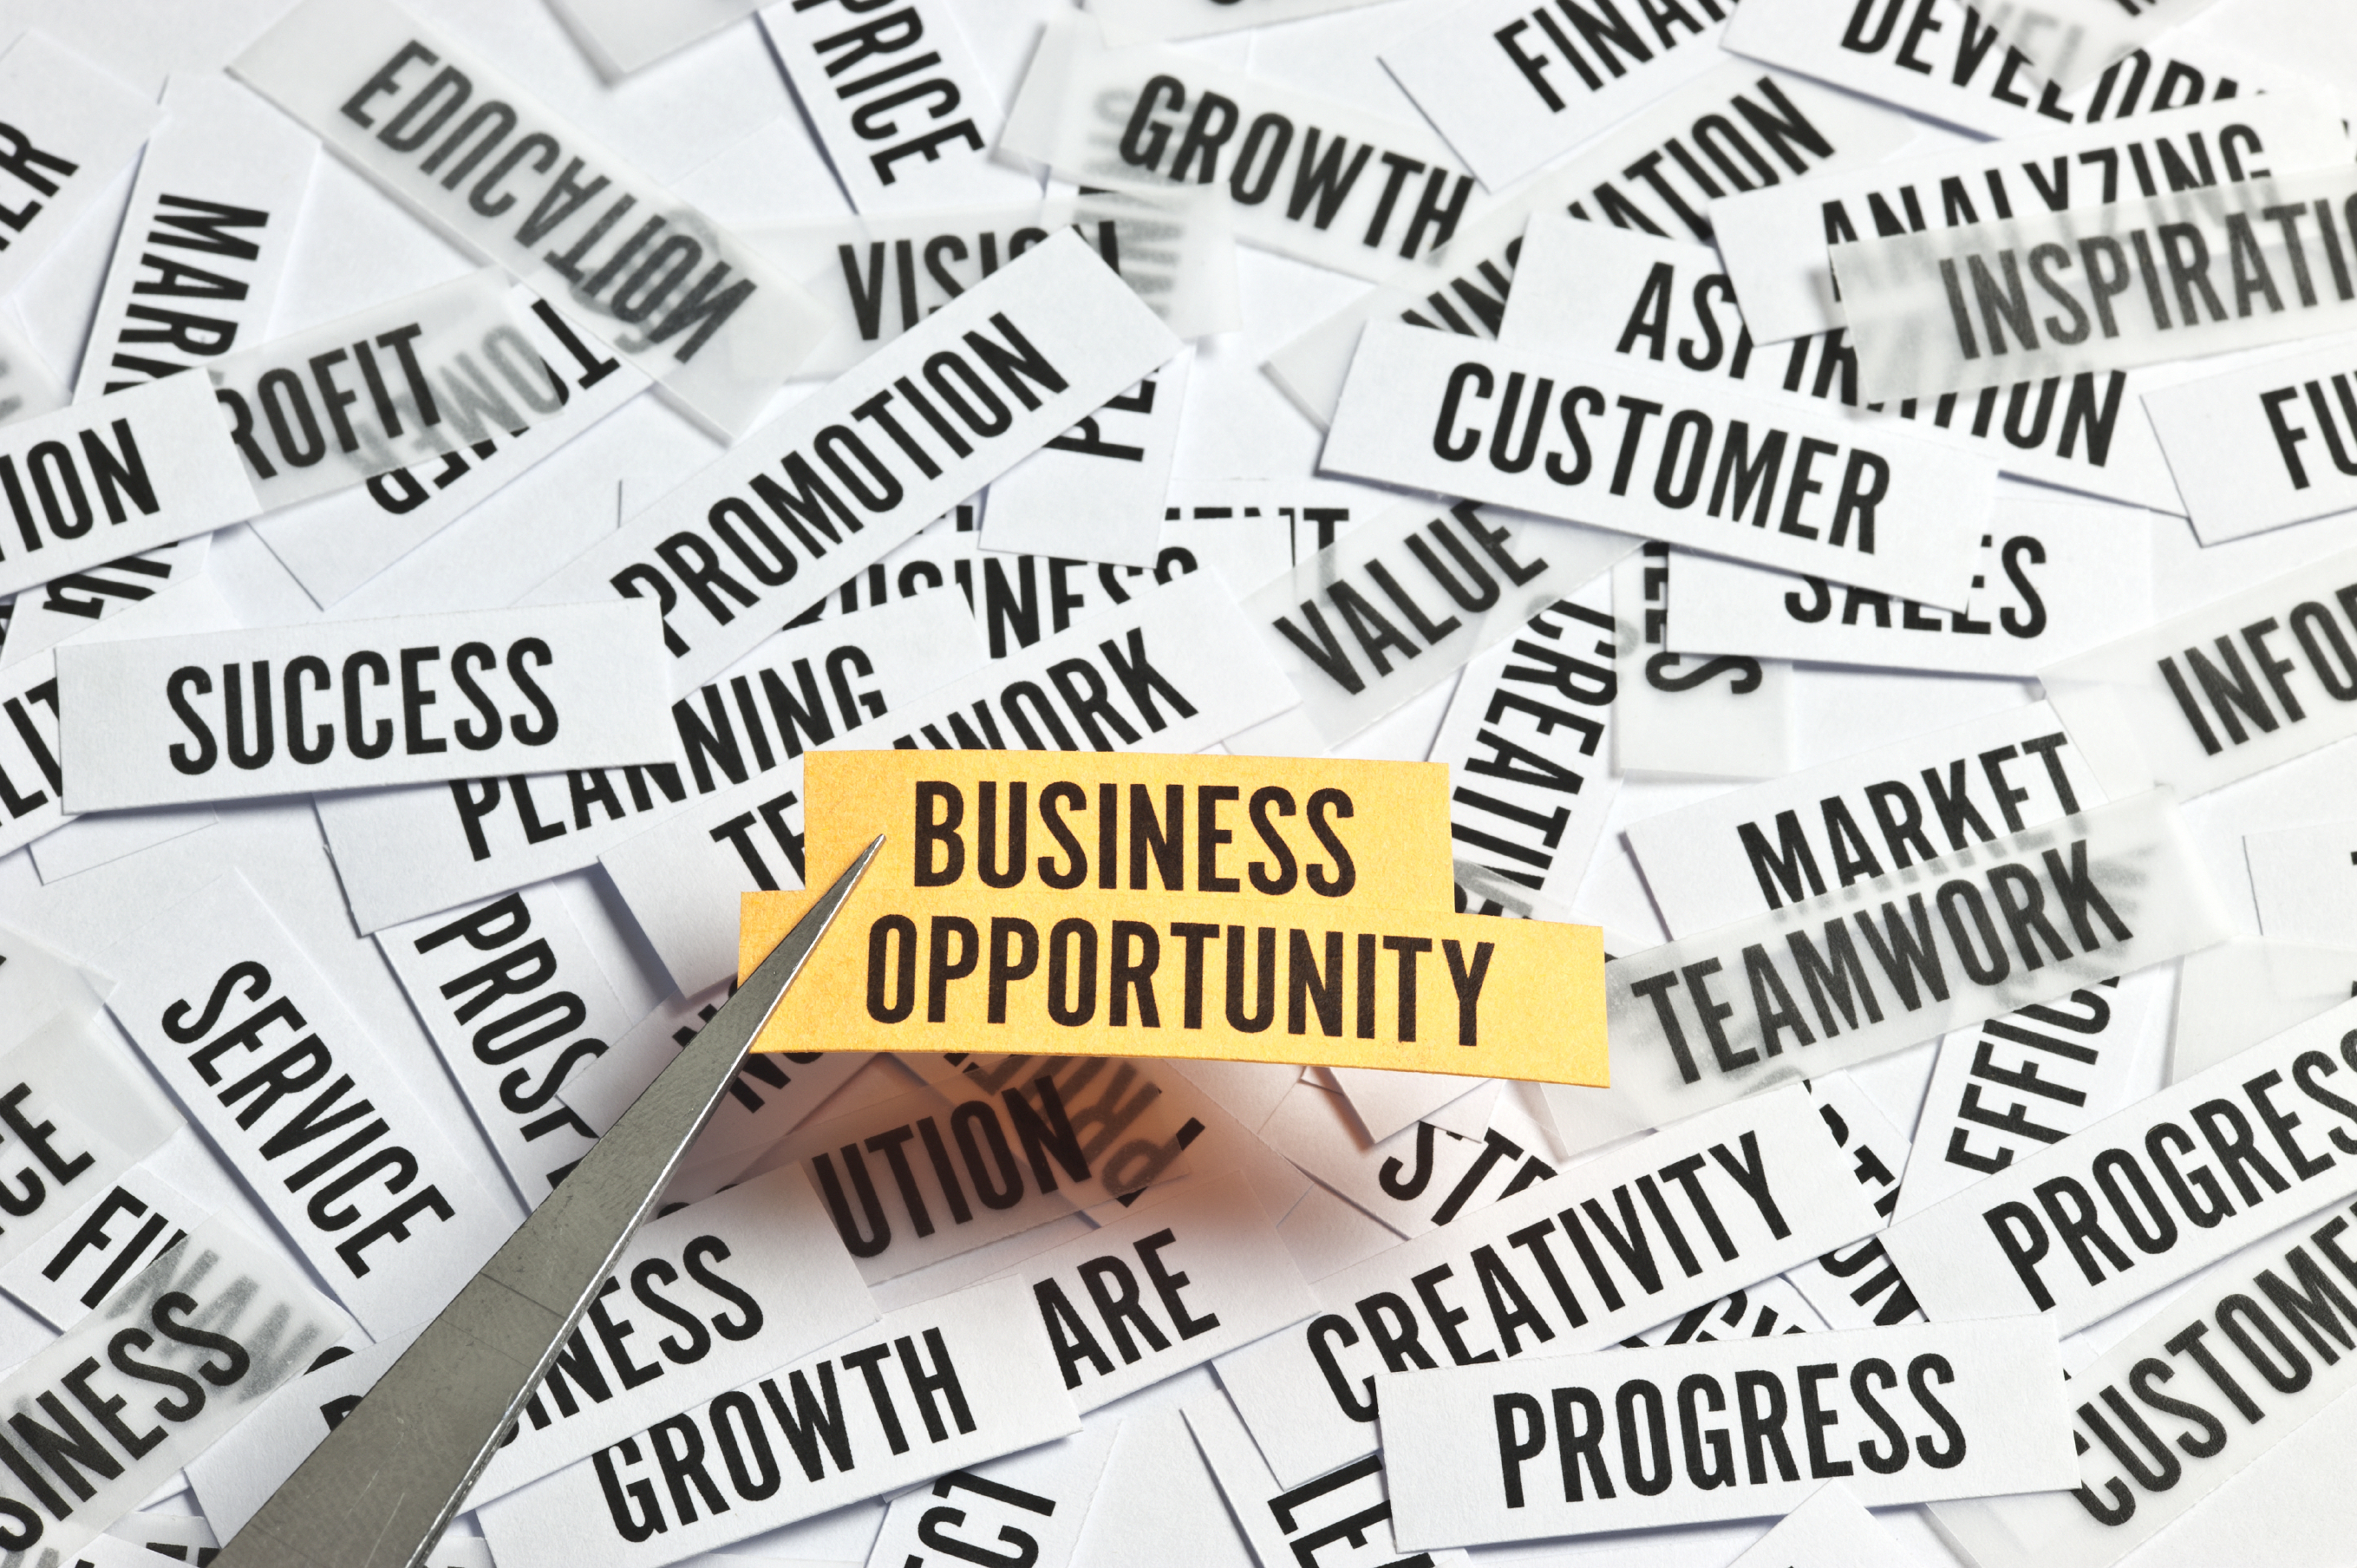 Now is the time to buy a business opportunity for Time for business